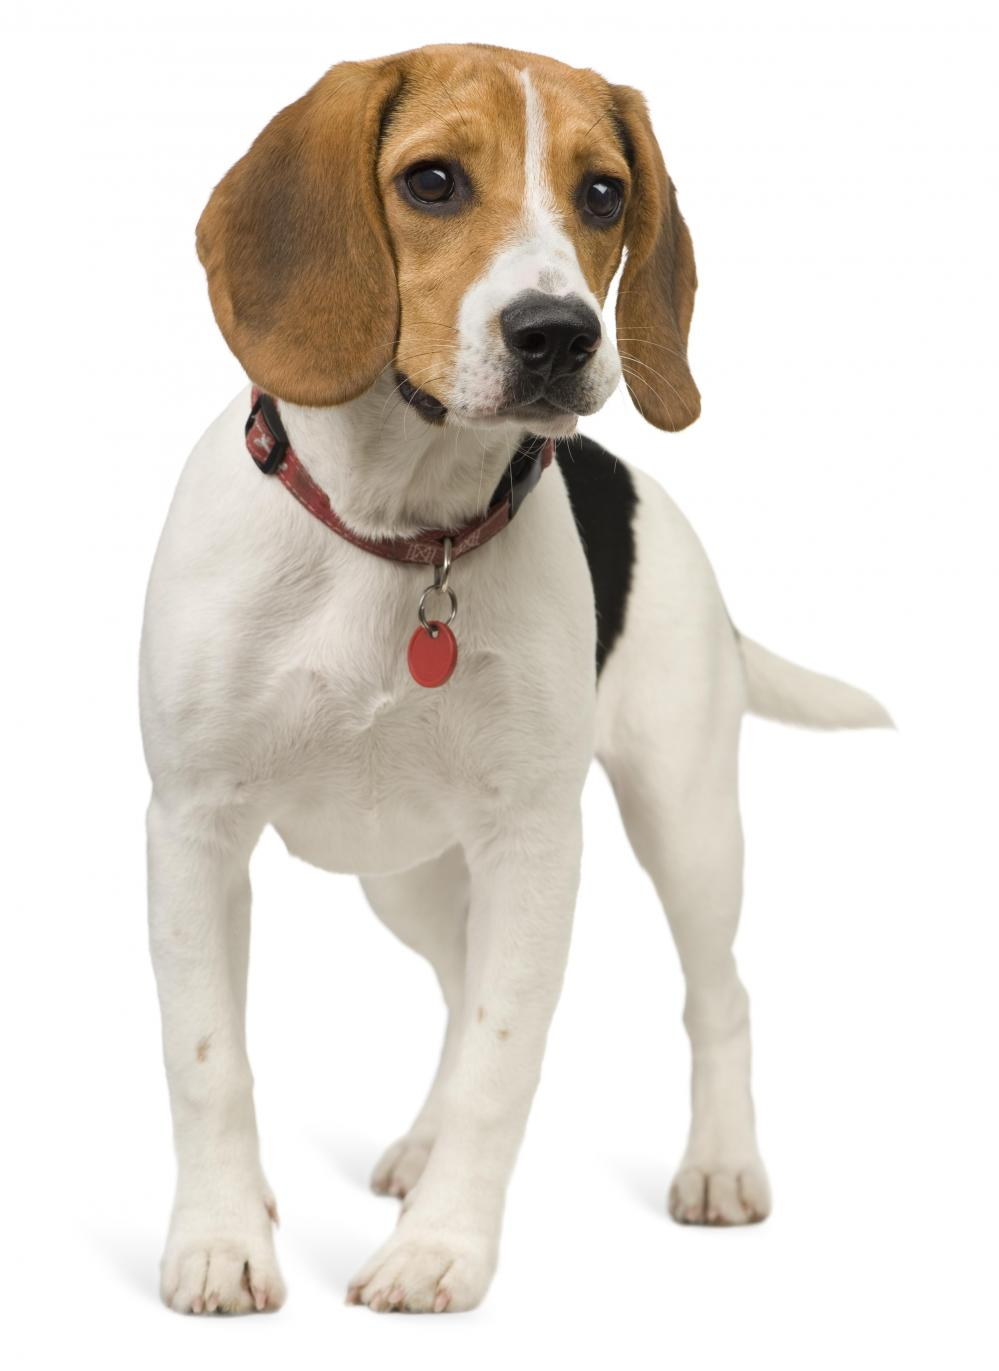 Hound Dog Breed Group - American Kennel Club